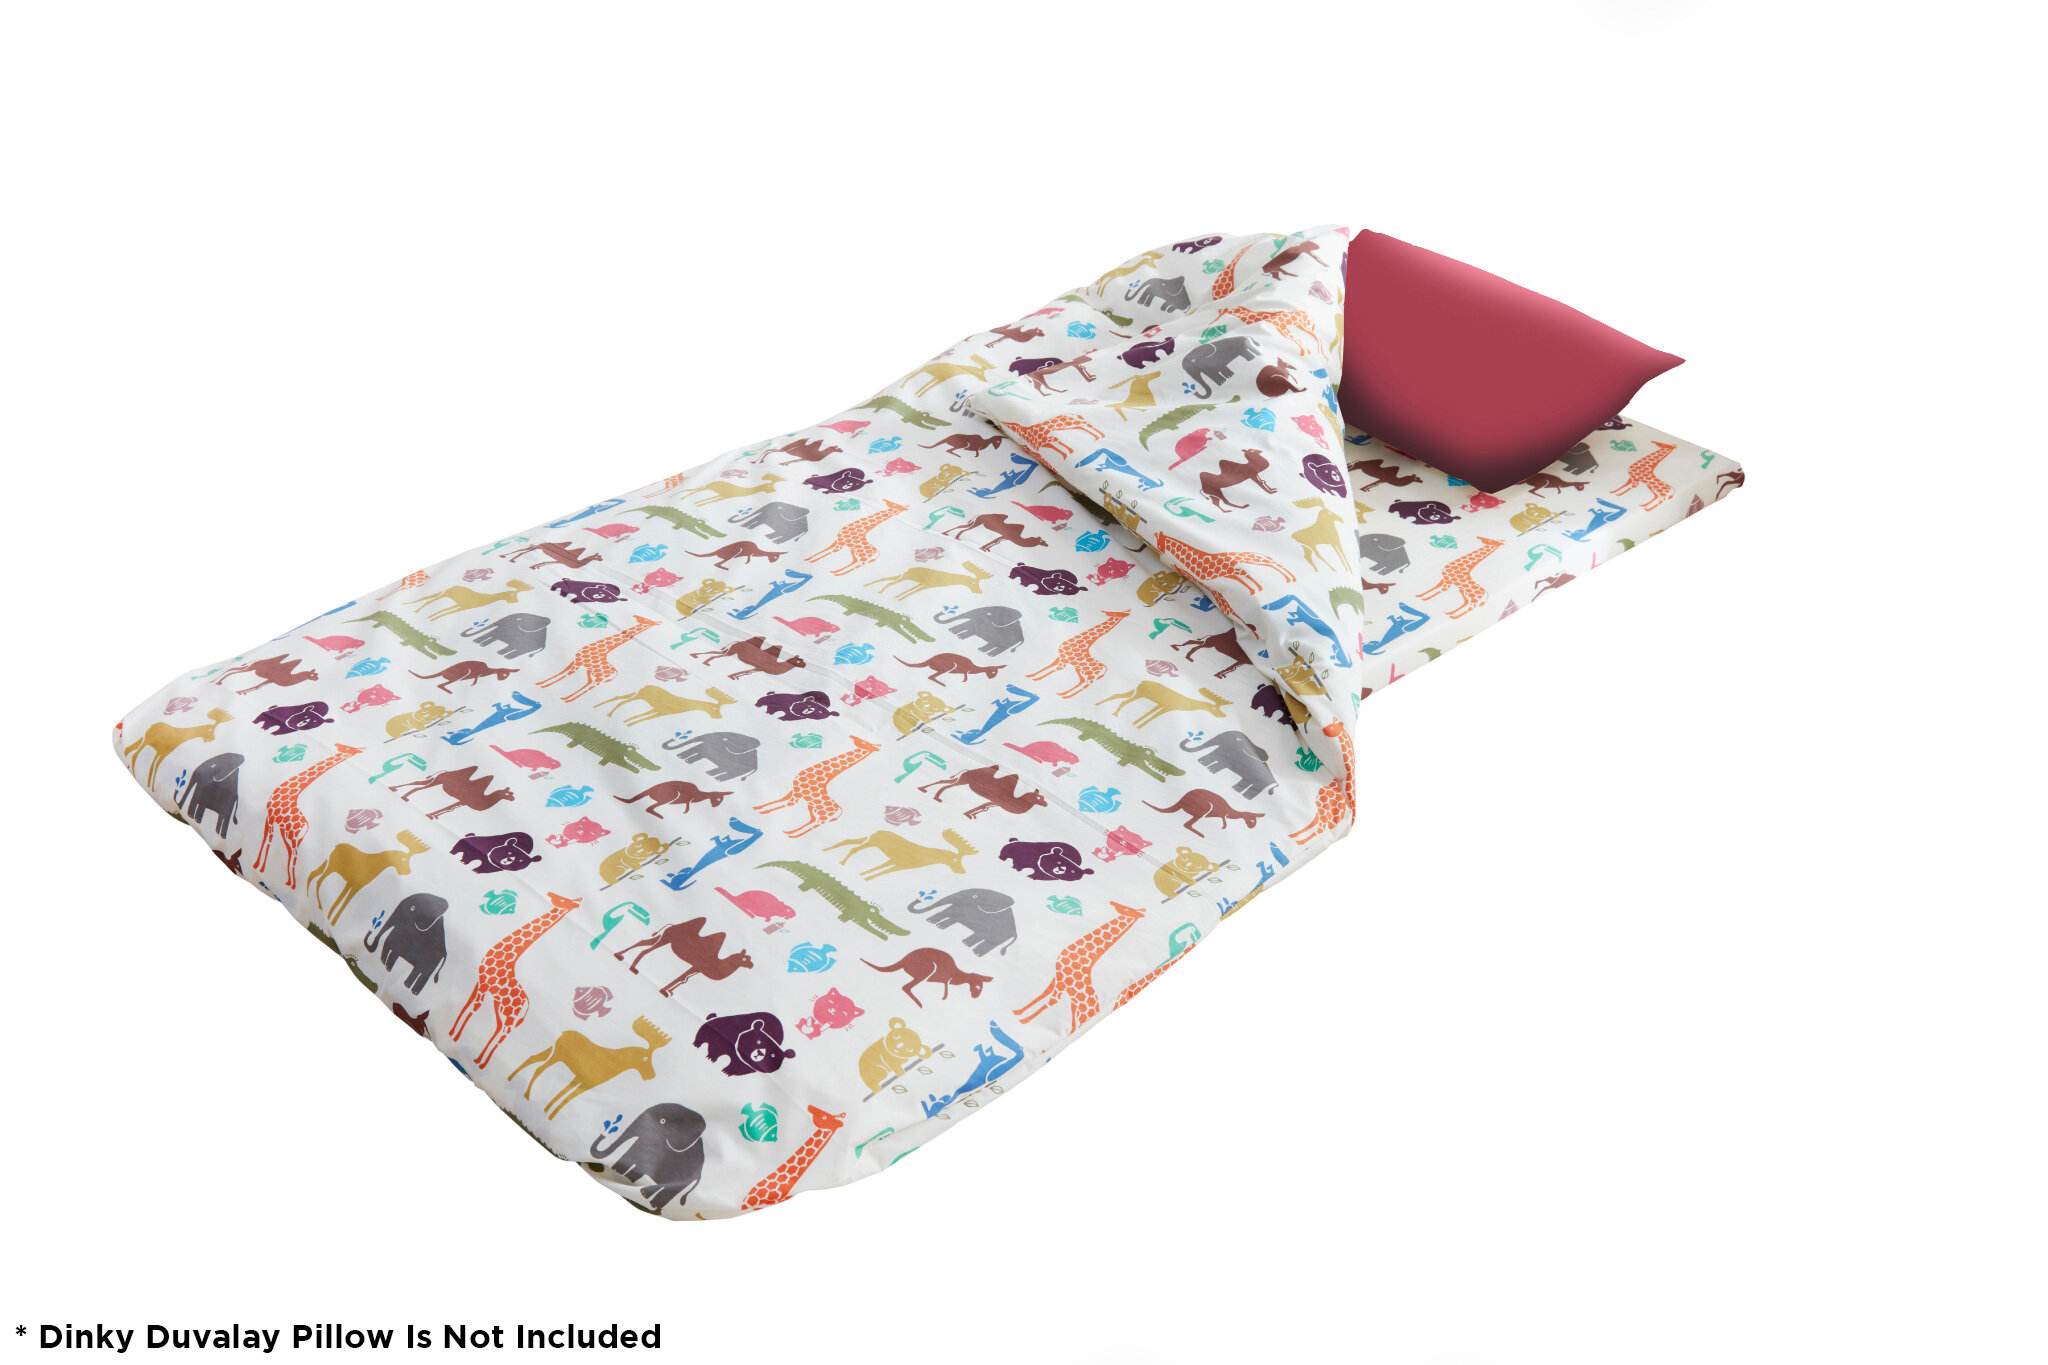 Disc O Bed Childrens Duvalay With Luxury Memory Foam Sleeping Bag